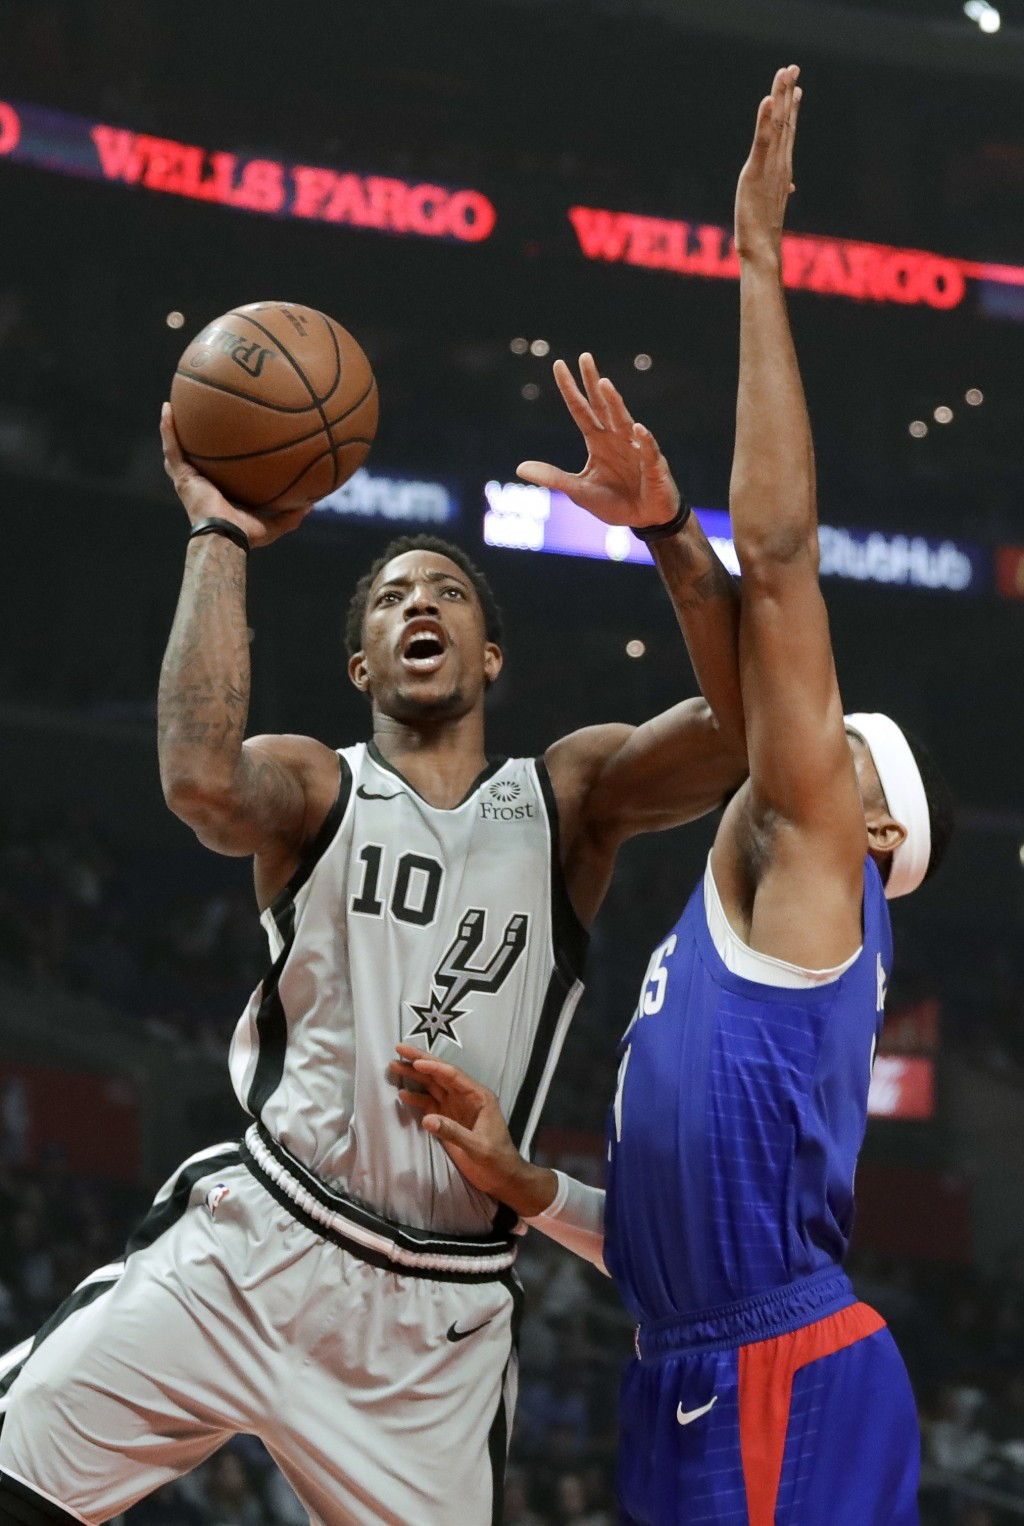 San Antonio Spurs guard DeMar DeRozan, left, drives to the basket past Los Angeles Clippers forward Tobias Harris during the first half of an NBA bask...